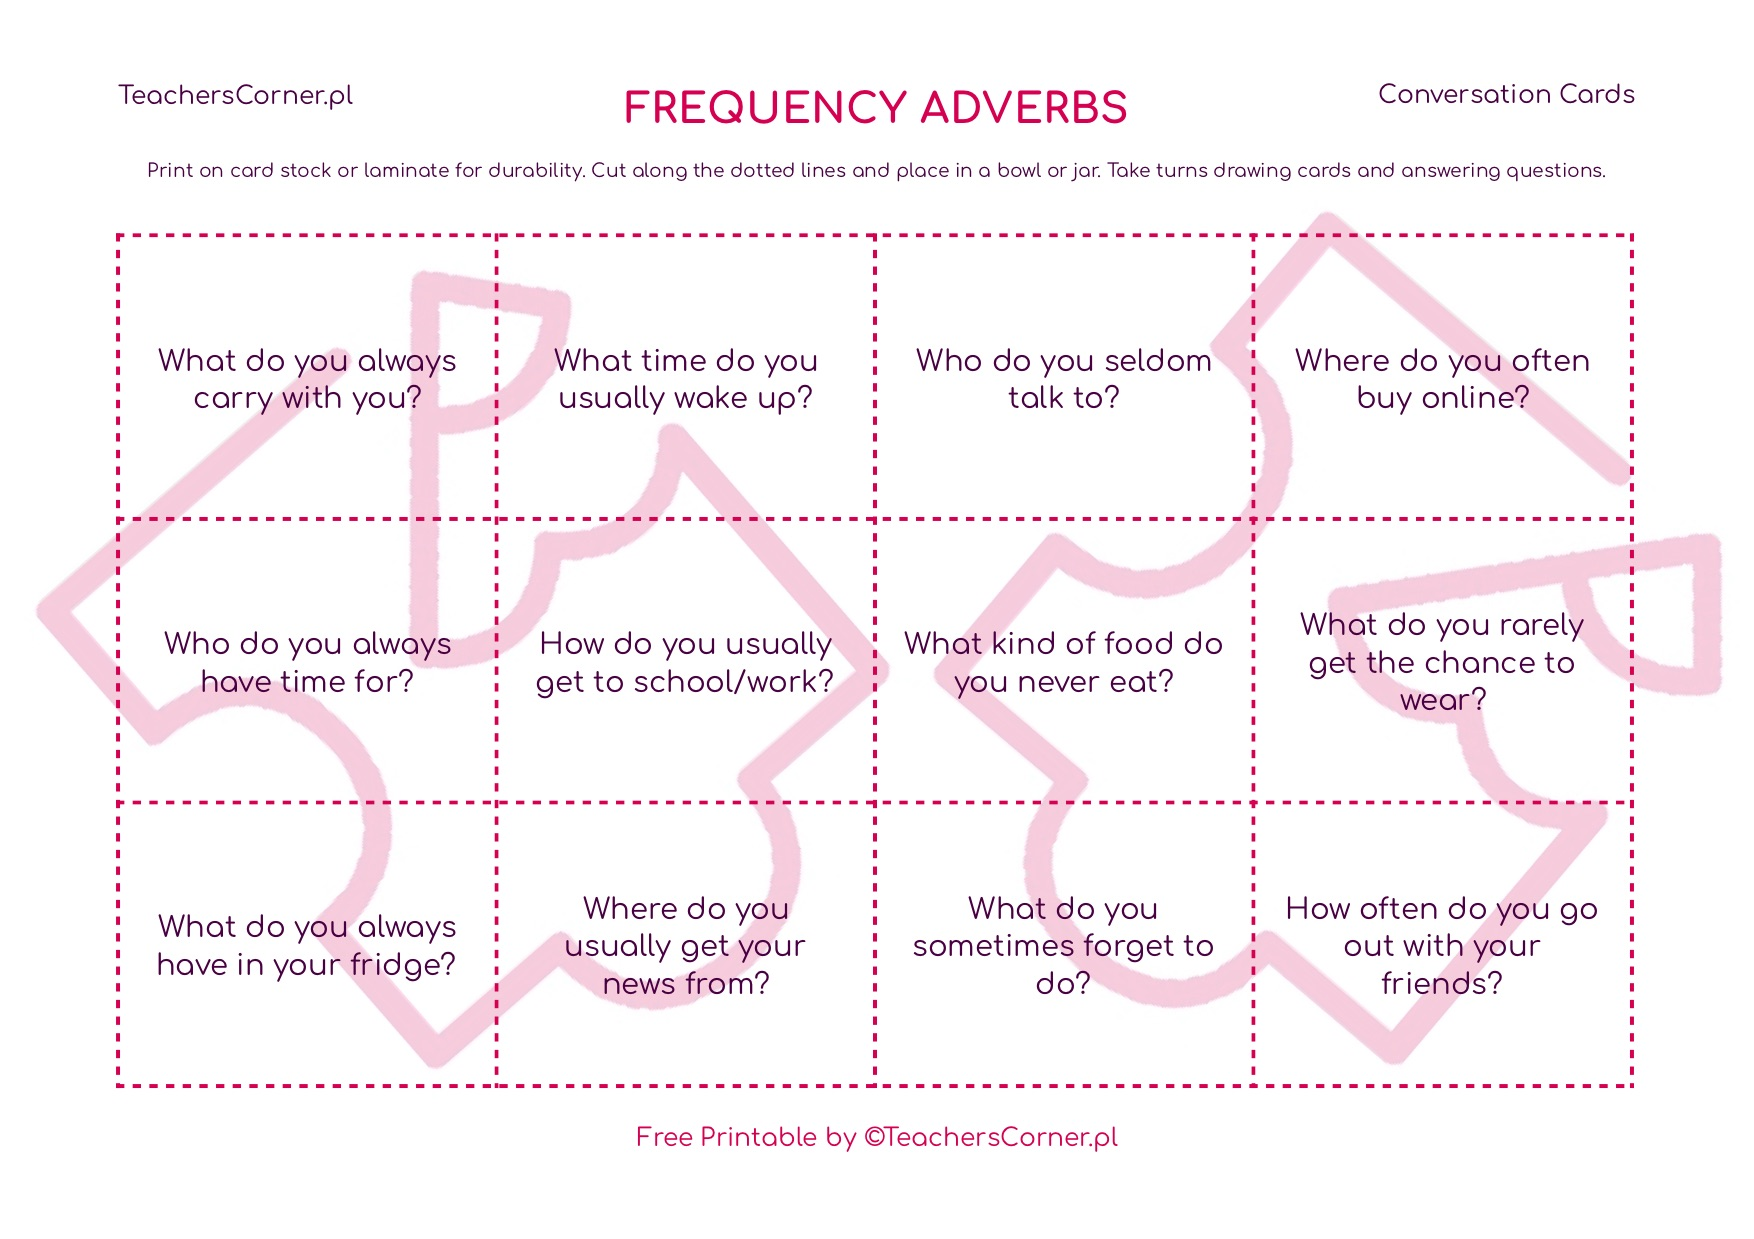 frequency adverbs conversation cards